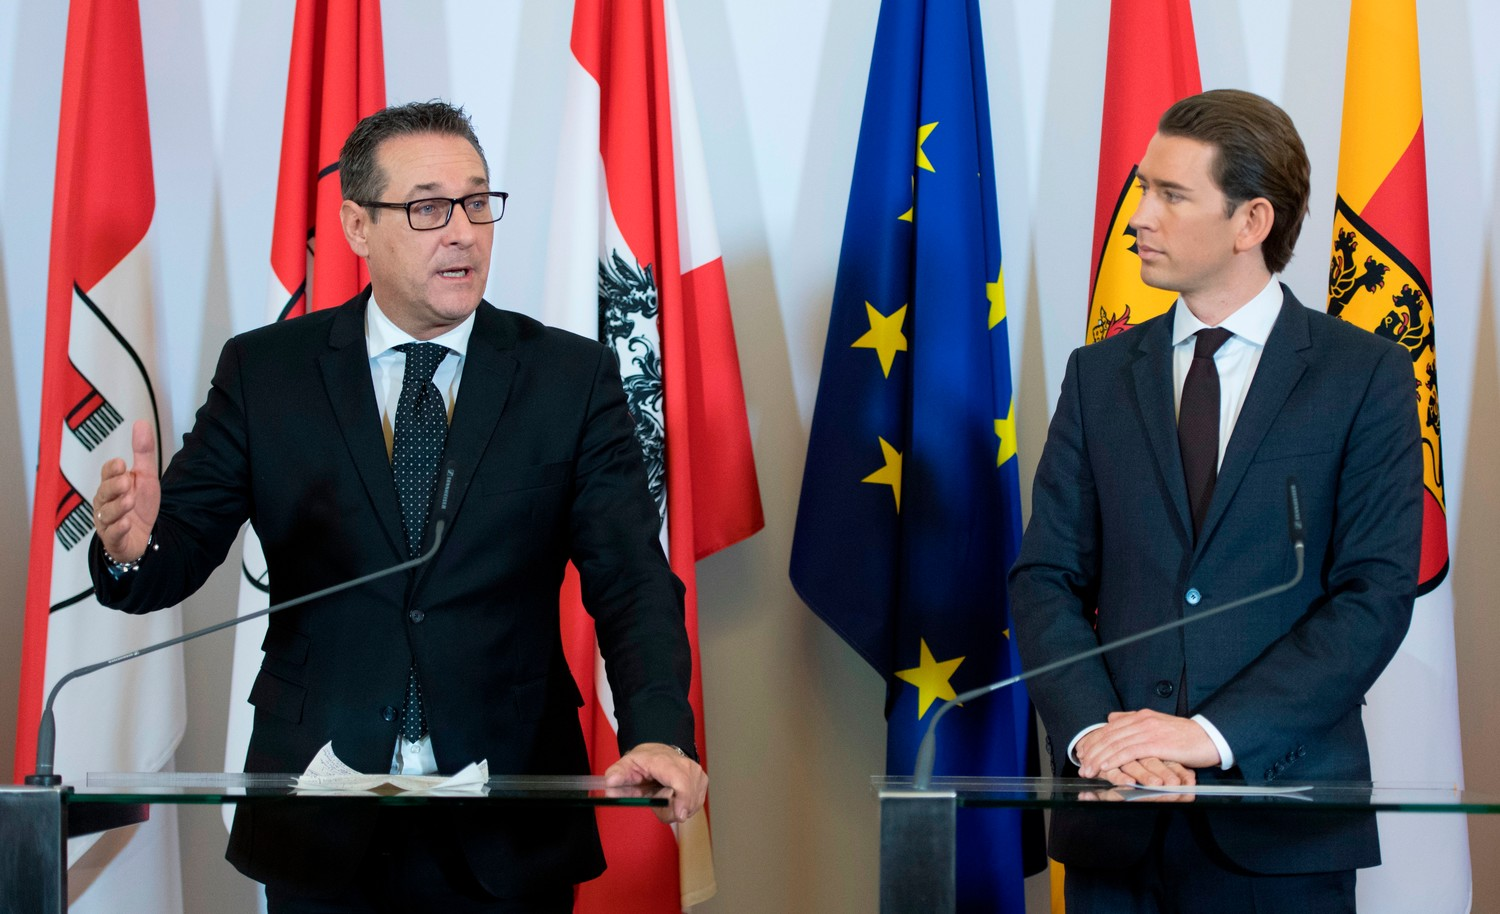 Chancellor Sebastian Kurz, right, of the Austrian People's Party and Vice Chancellor Heinz-Christian Strache of the Freedom Party, after their first Cabinet meeting on Dec. 19, 2017.